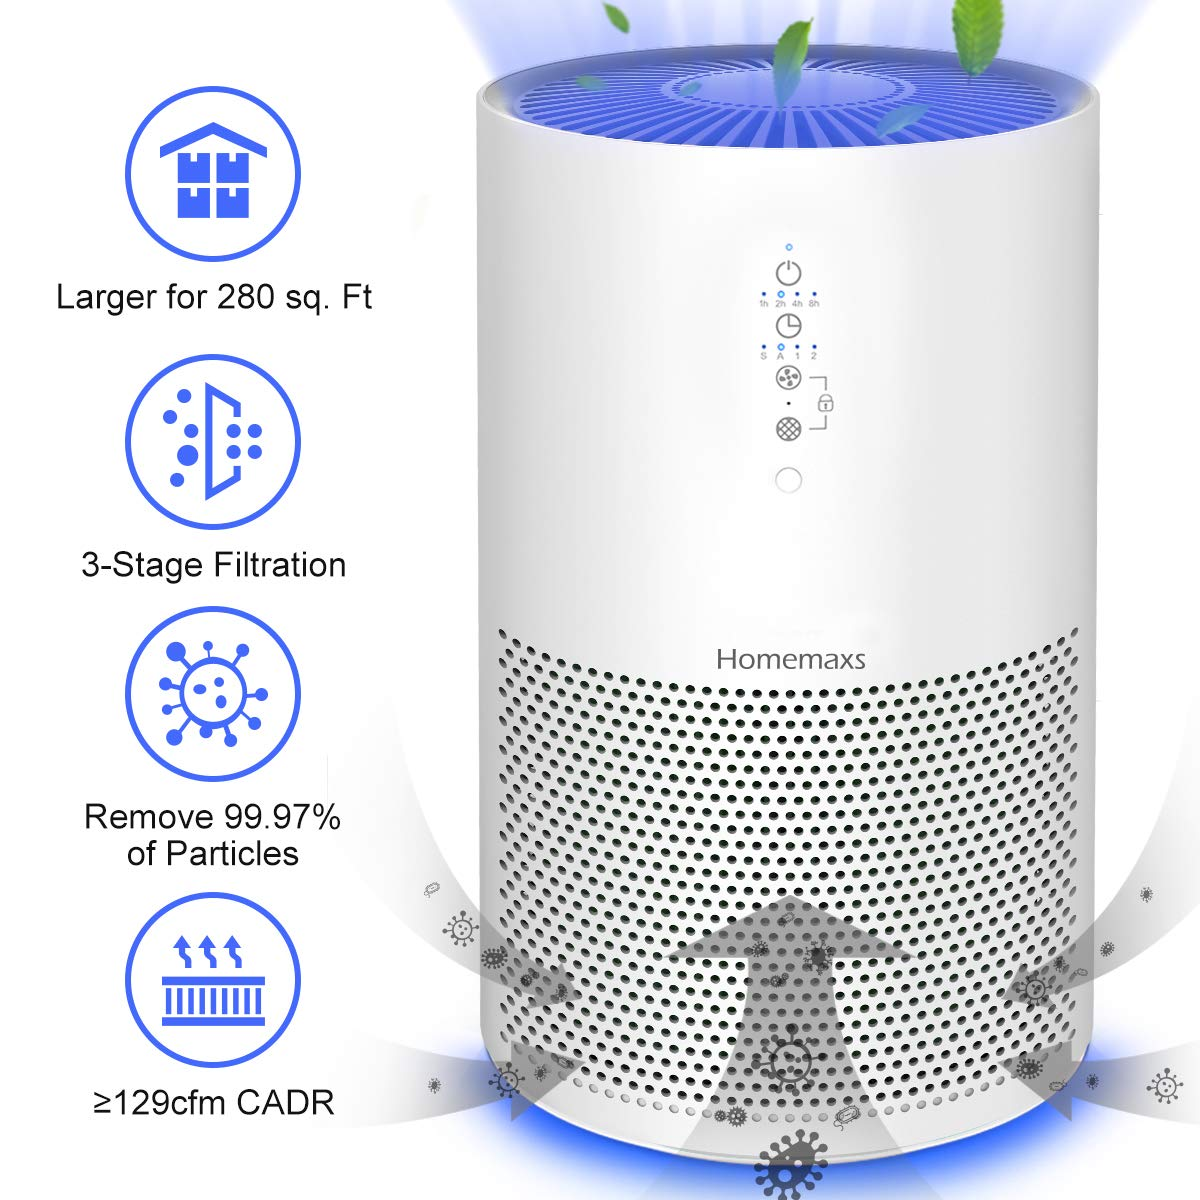 Homemaxs Air Purifier for Allergies and Pets Hair Smokers, 2019 NEWEST True HEPA Filter, Quiet for Large Room up to 280 sq. Ft, Night Light Time, Captures up to 99.97 of Smoke,Dust, 3-Yr Warranty